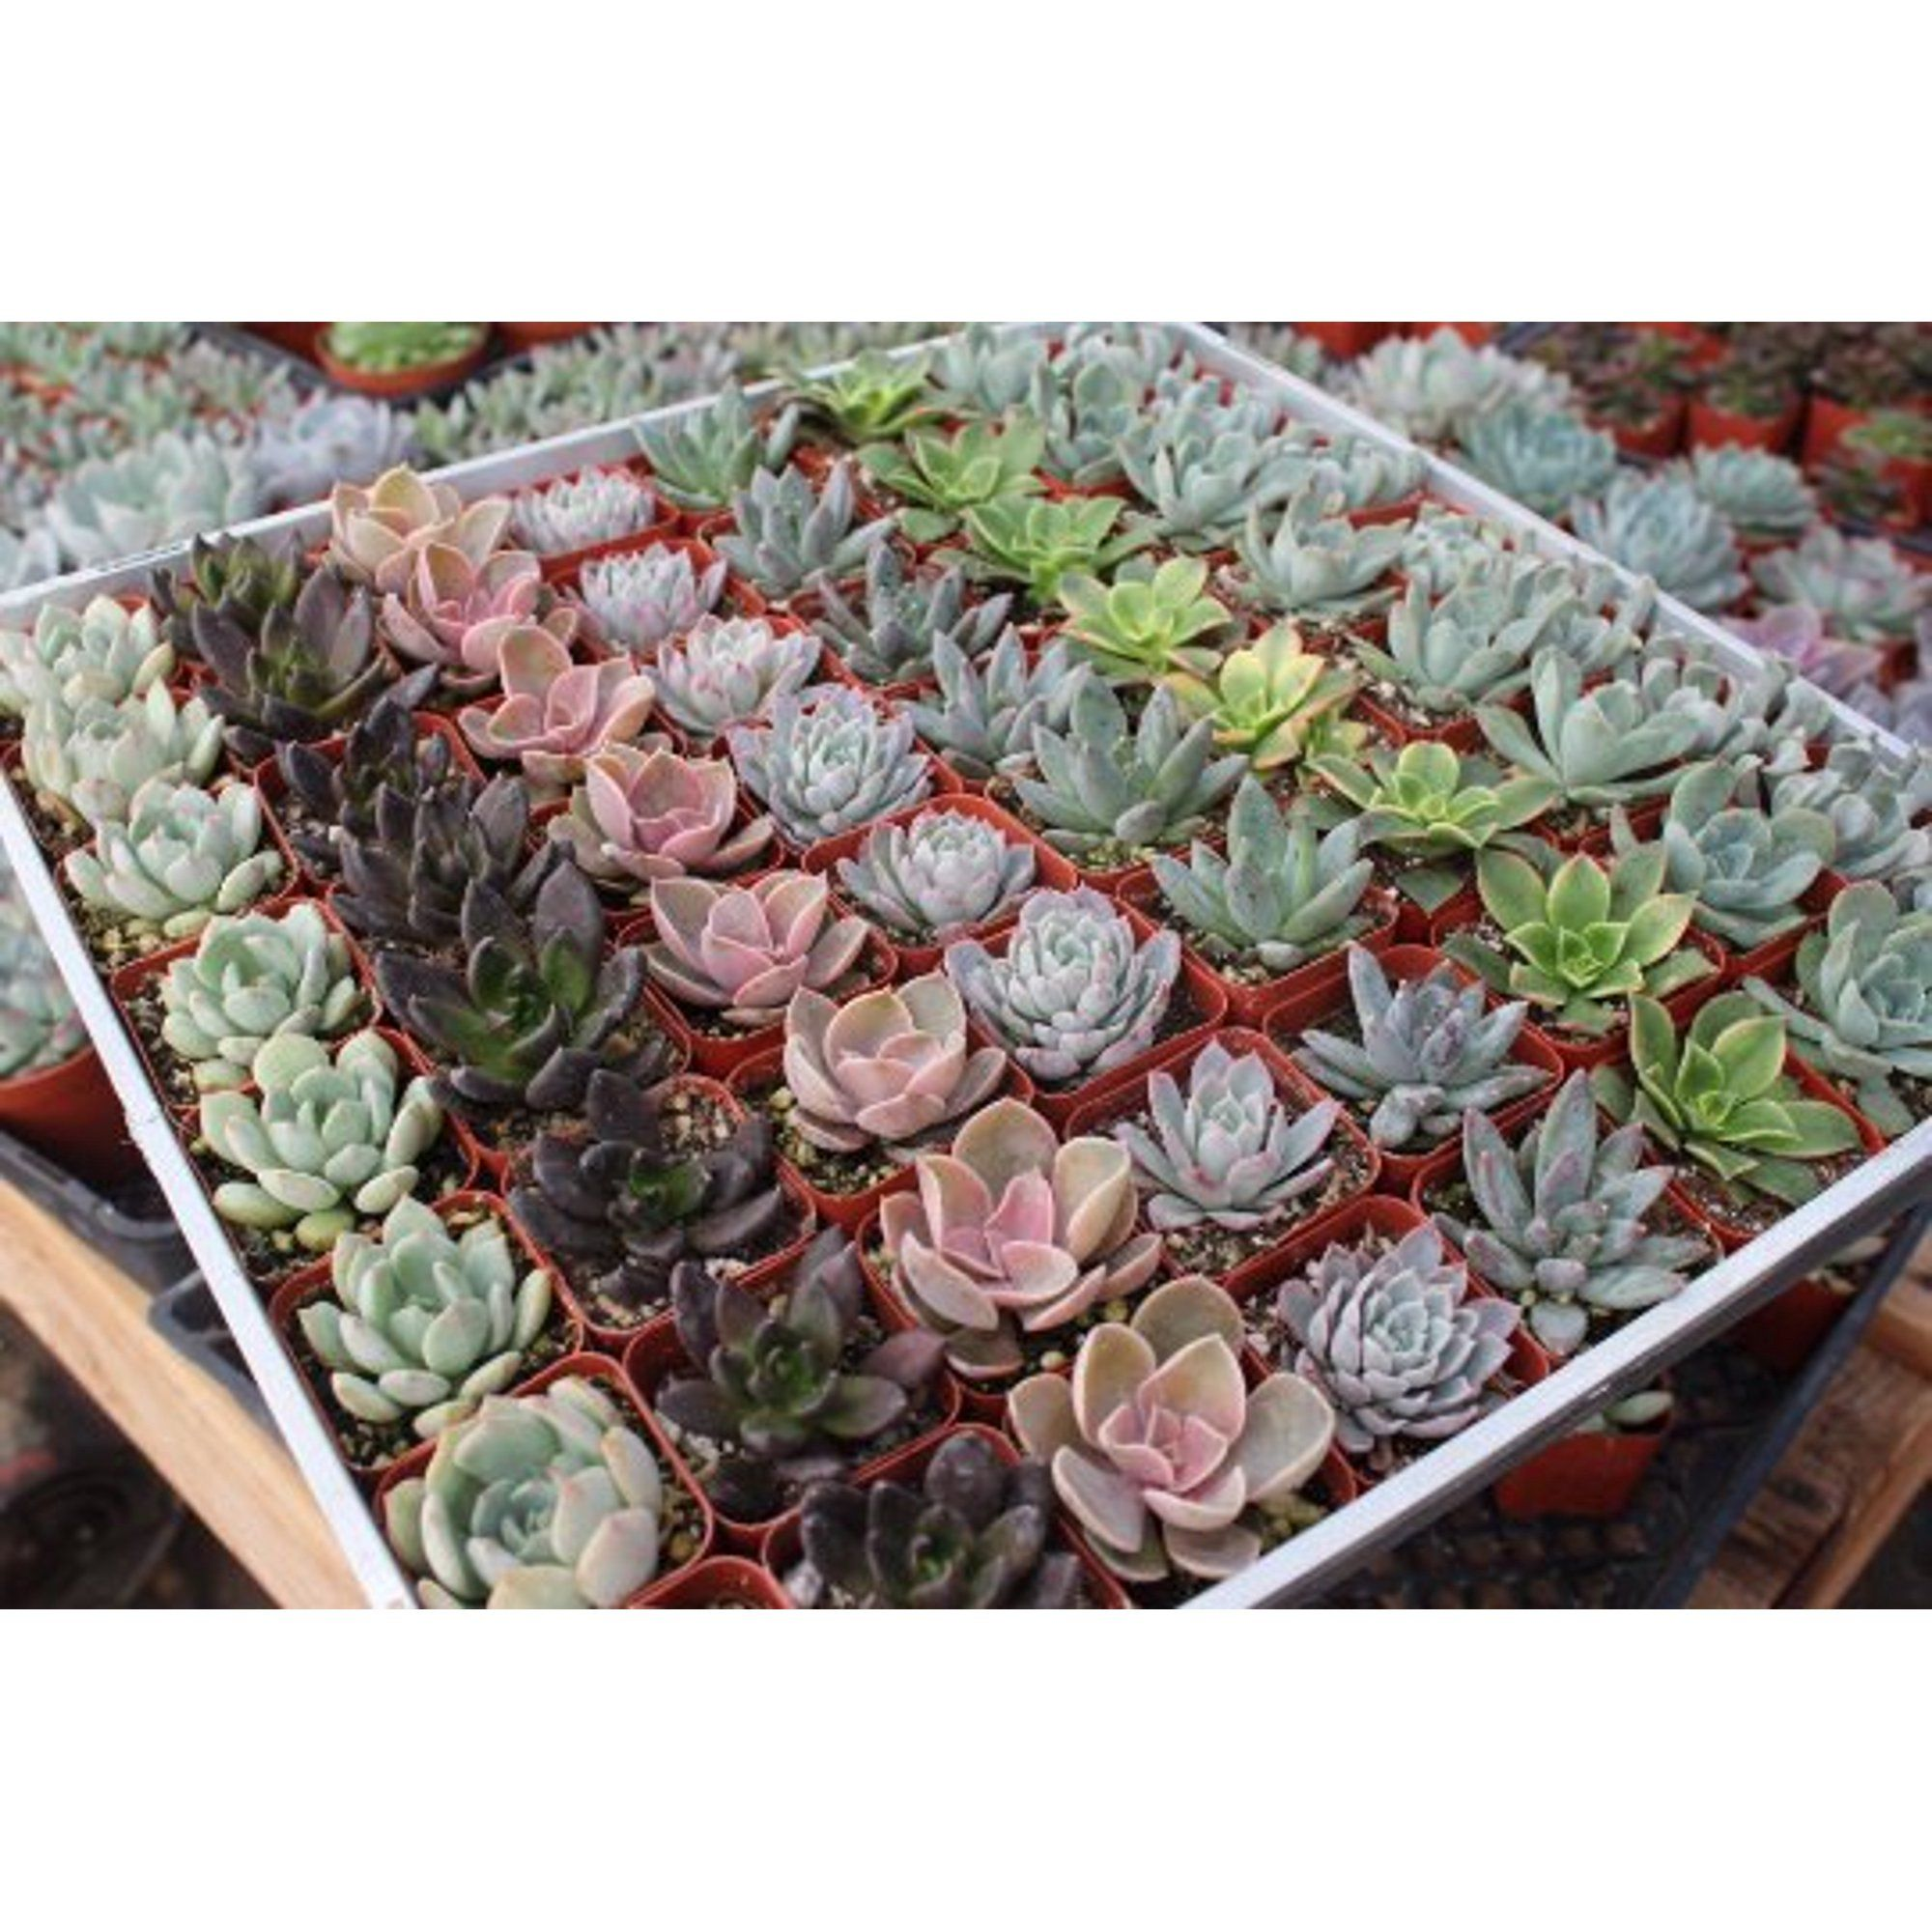 "Rosette Succulents for Wedding Favors, Party Gifts and Gardens - 2"" Live Succulent Plants - Walmart.com"